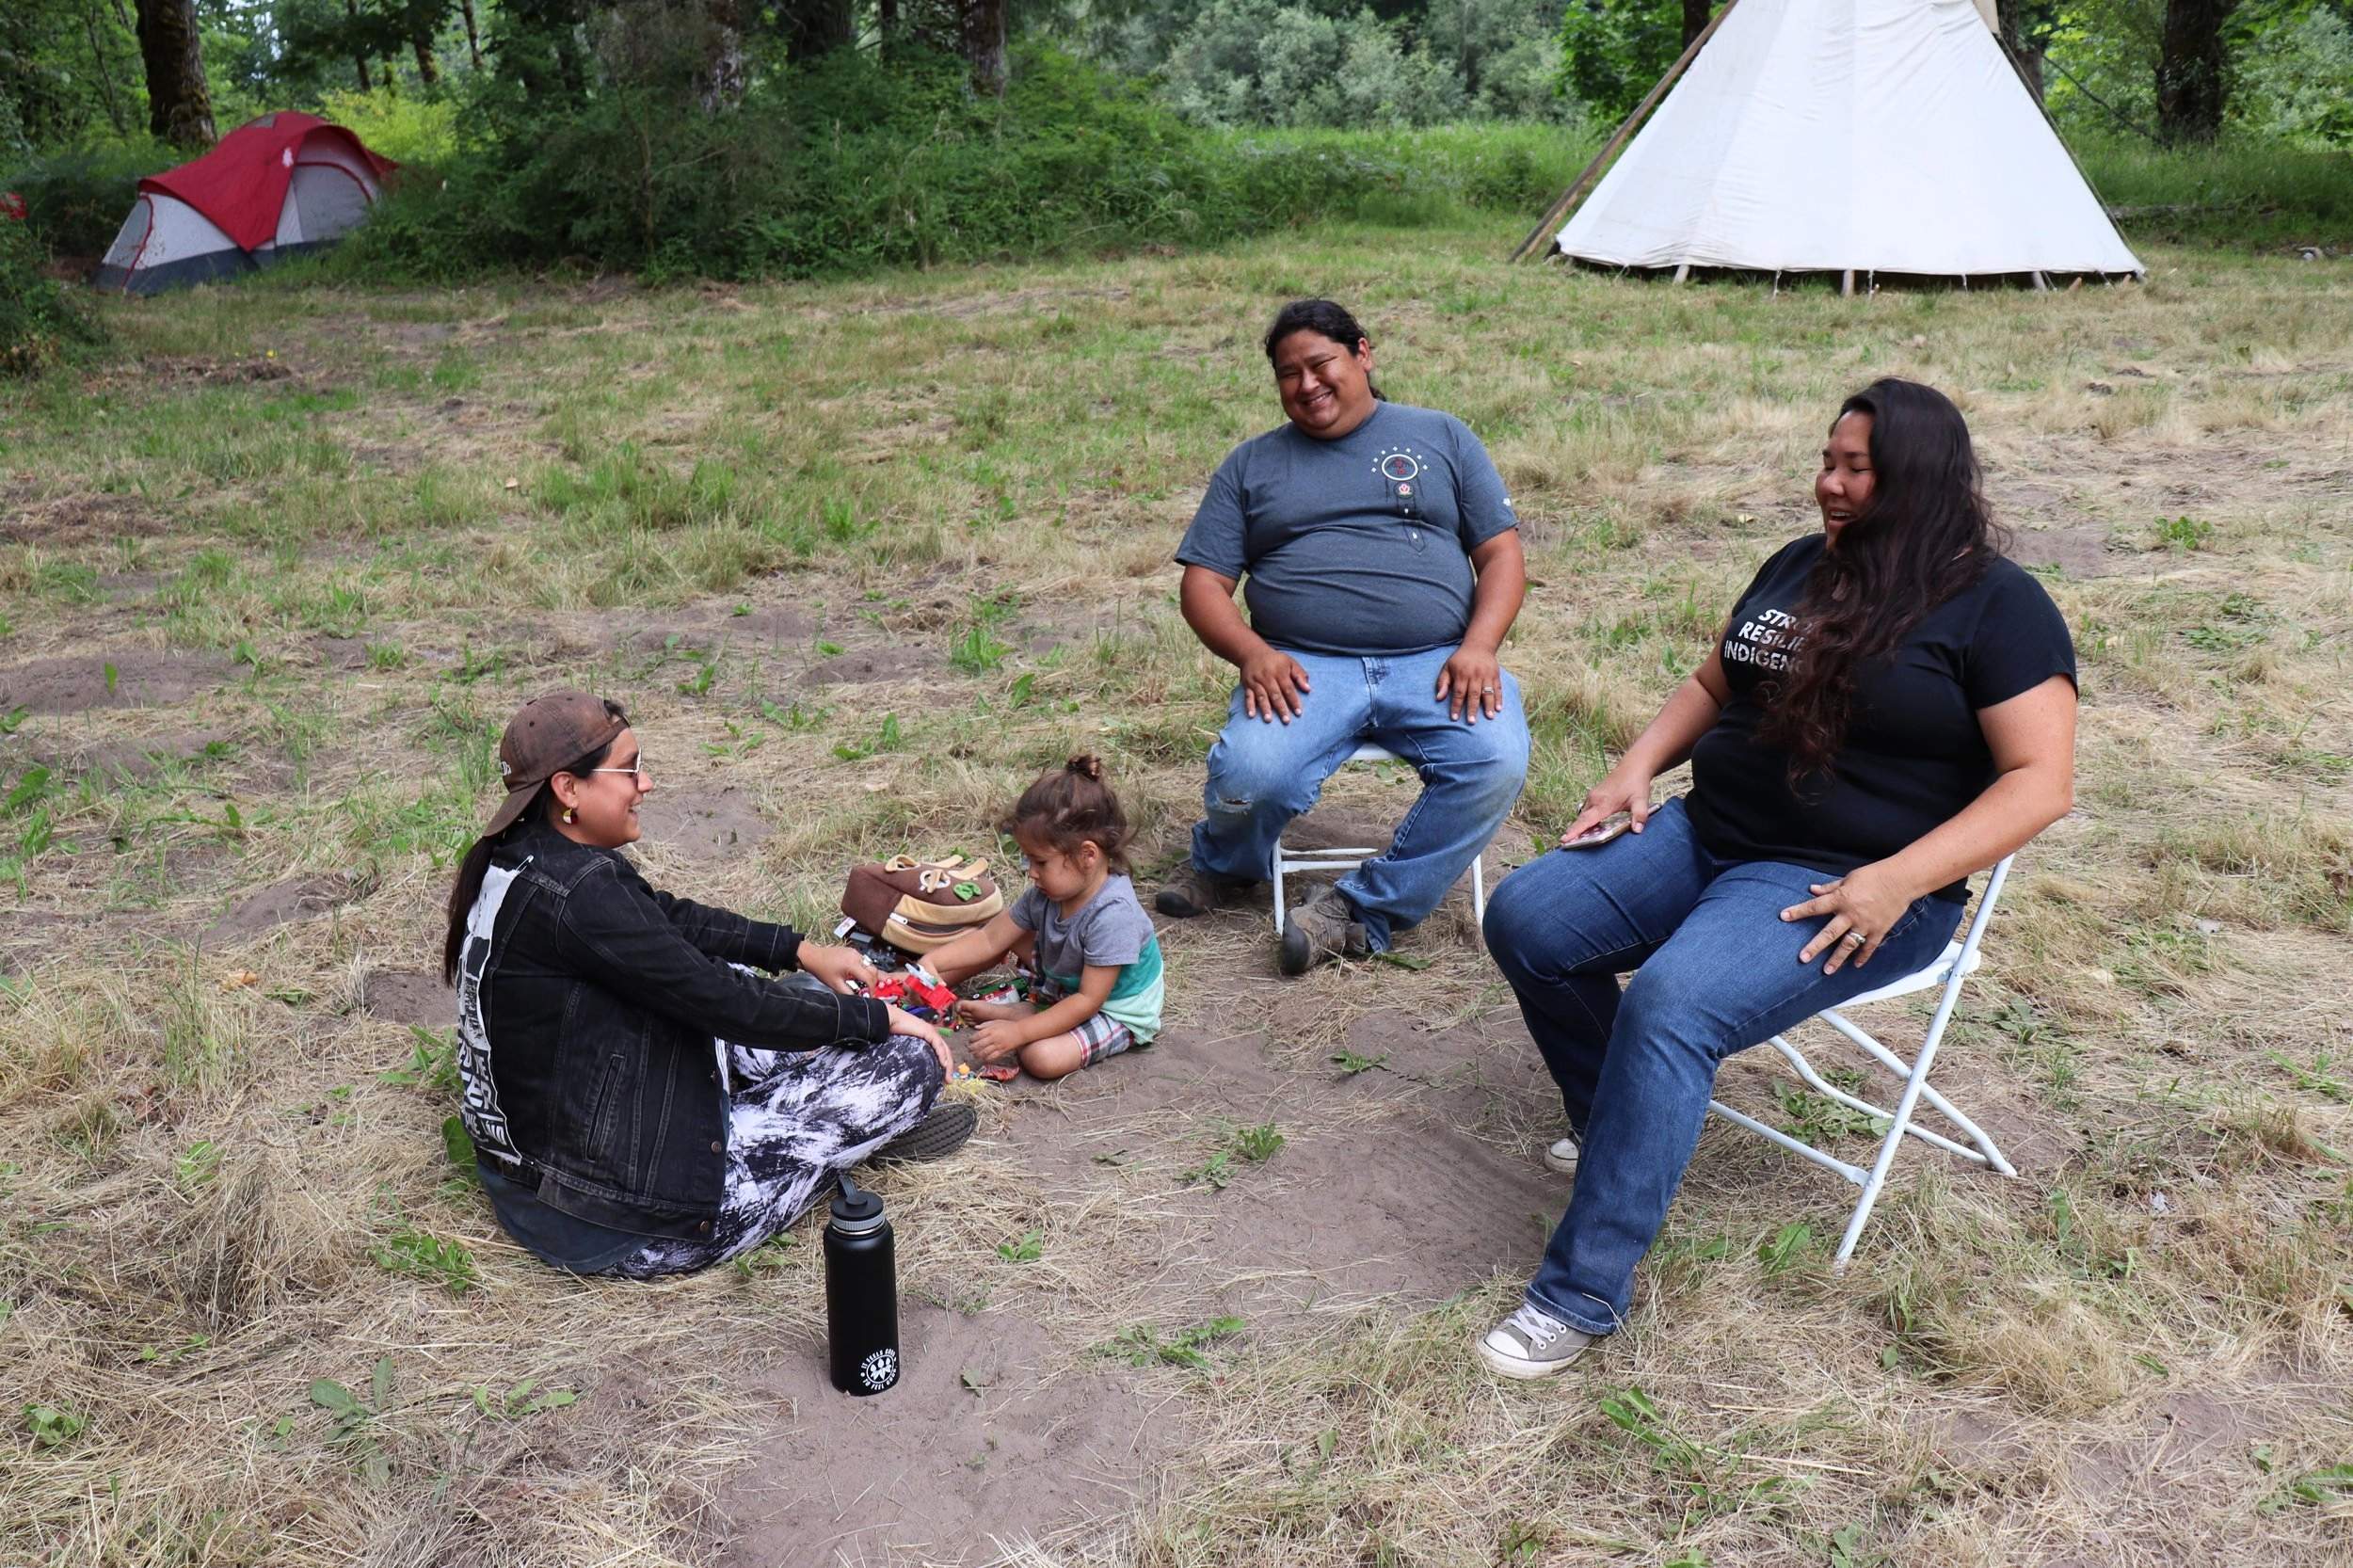 Seeding Sovereignty board member Linda Black Elk, with family.